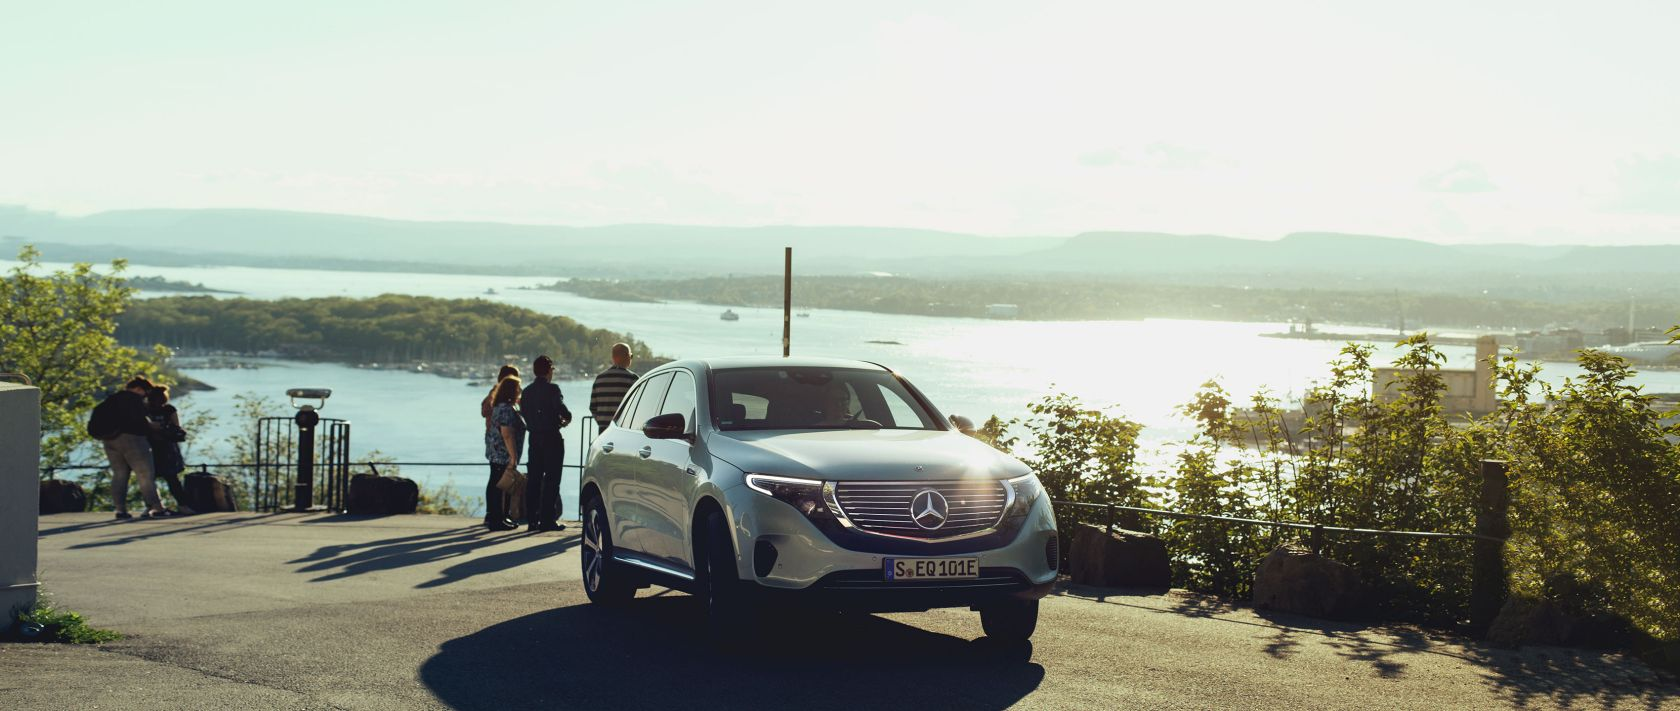 The Oslofjord is one of the largest fjords in Norway and a fitting backdrop for the Mercedes-Benz EQC.